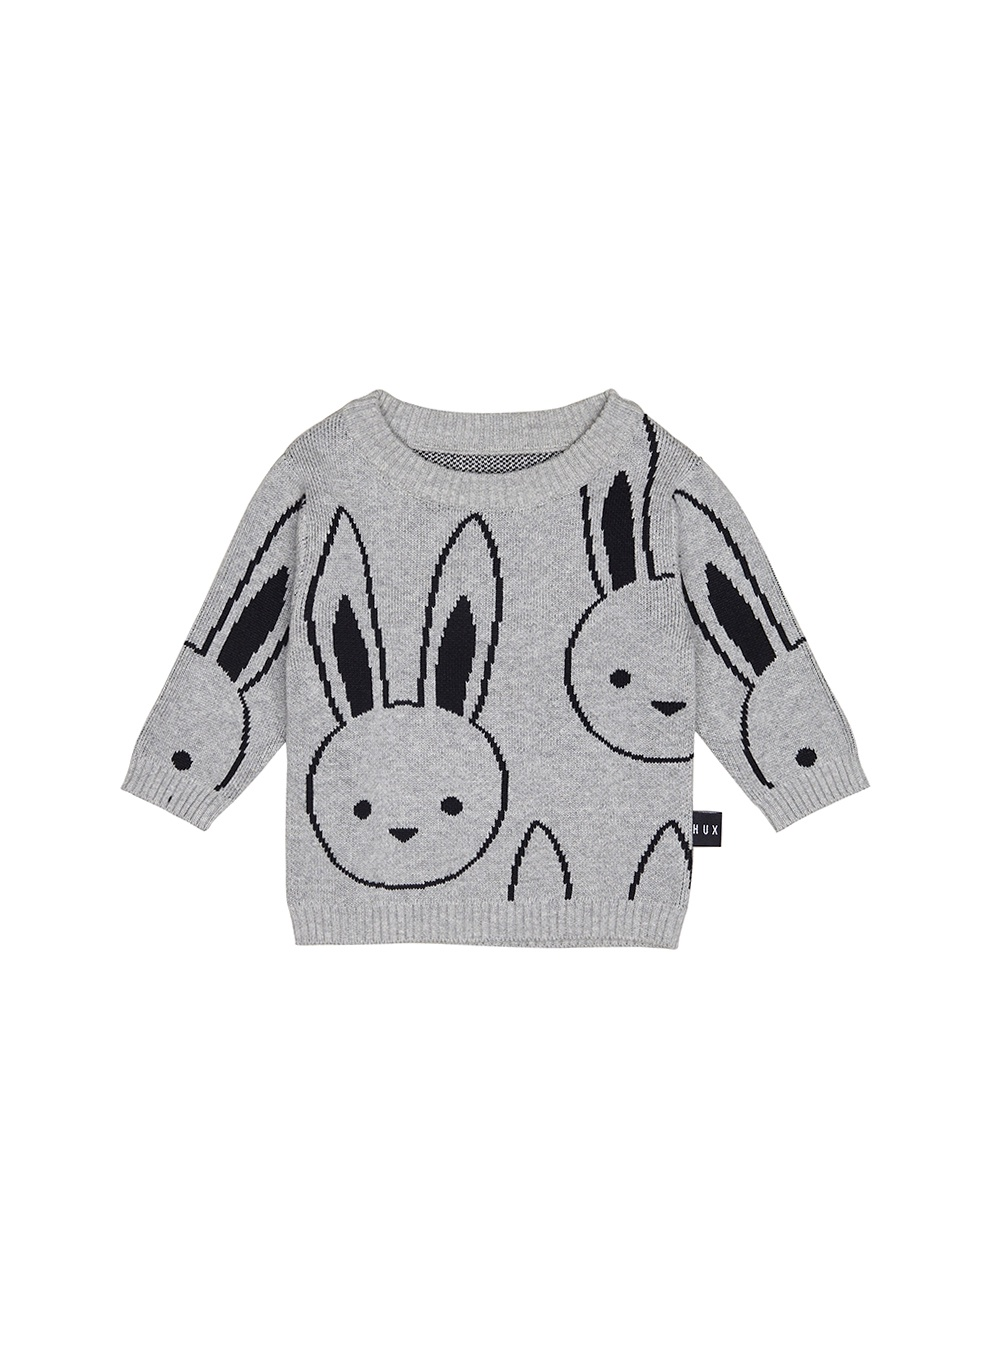 BUNNY KNIT JUMPER KIDS